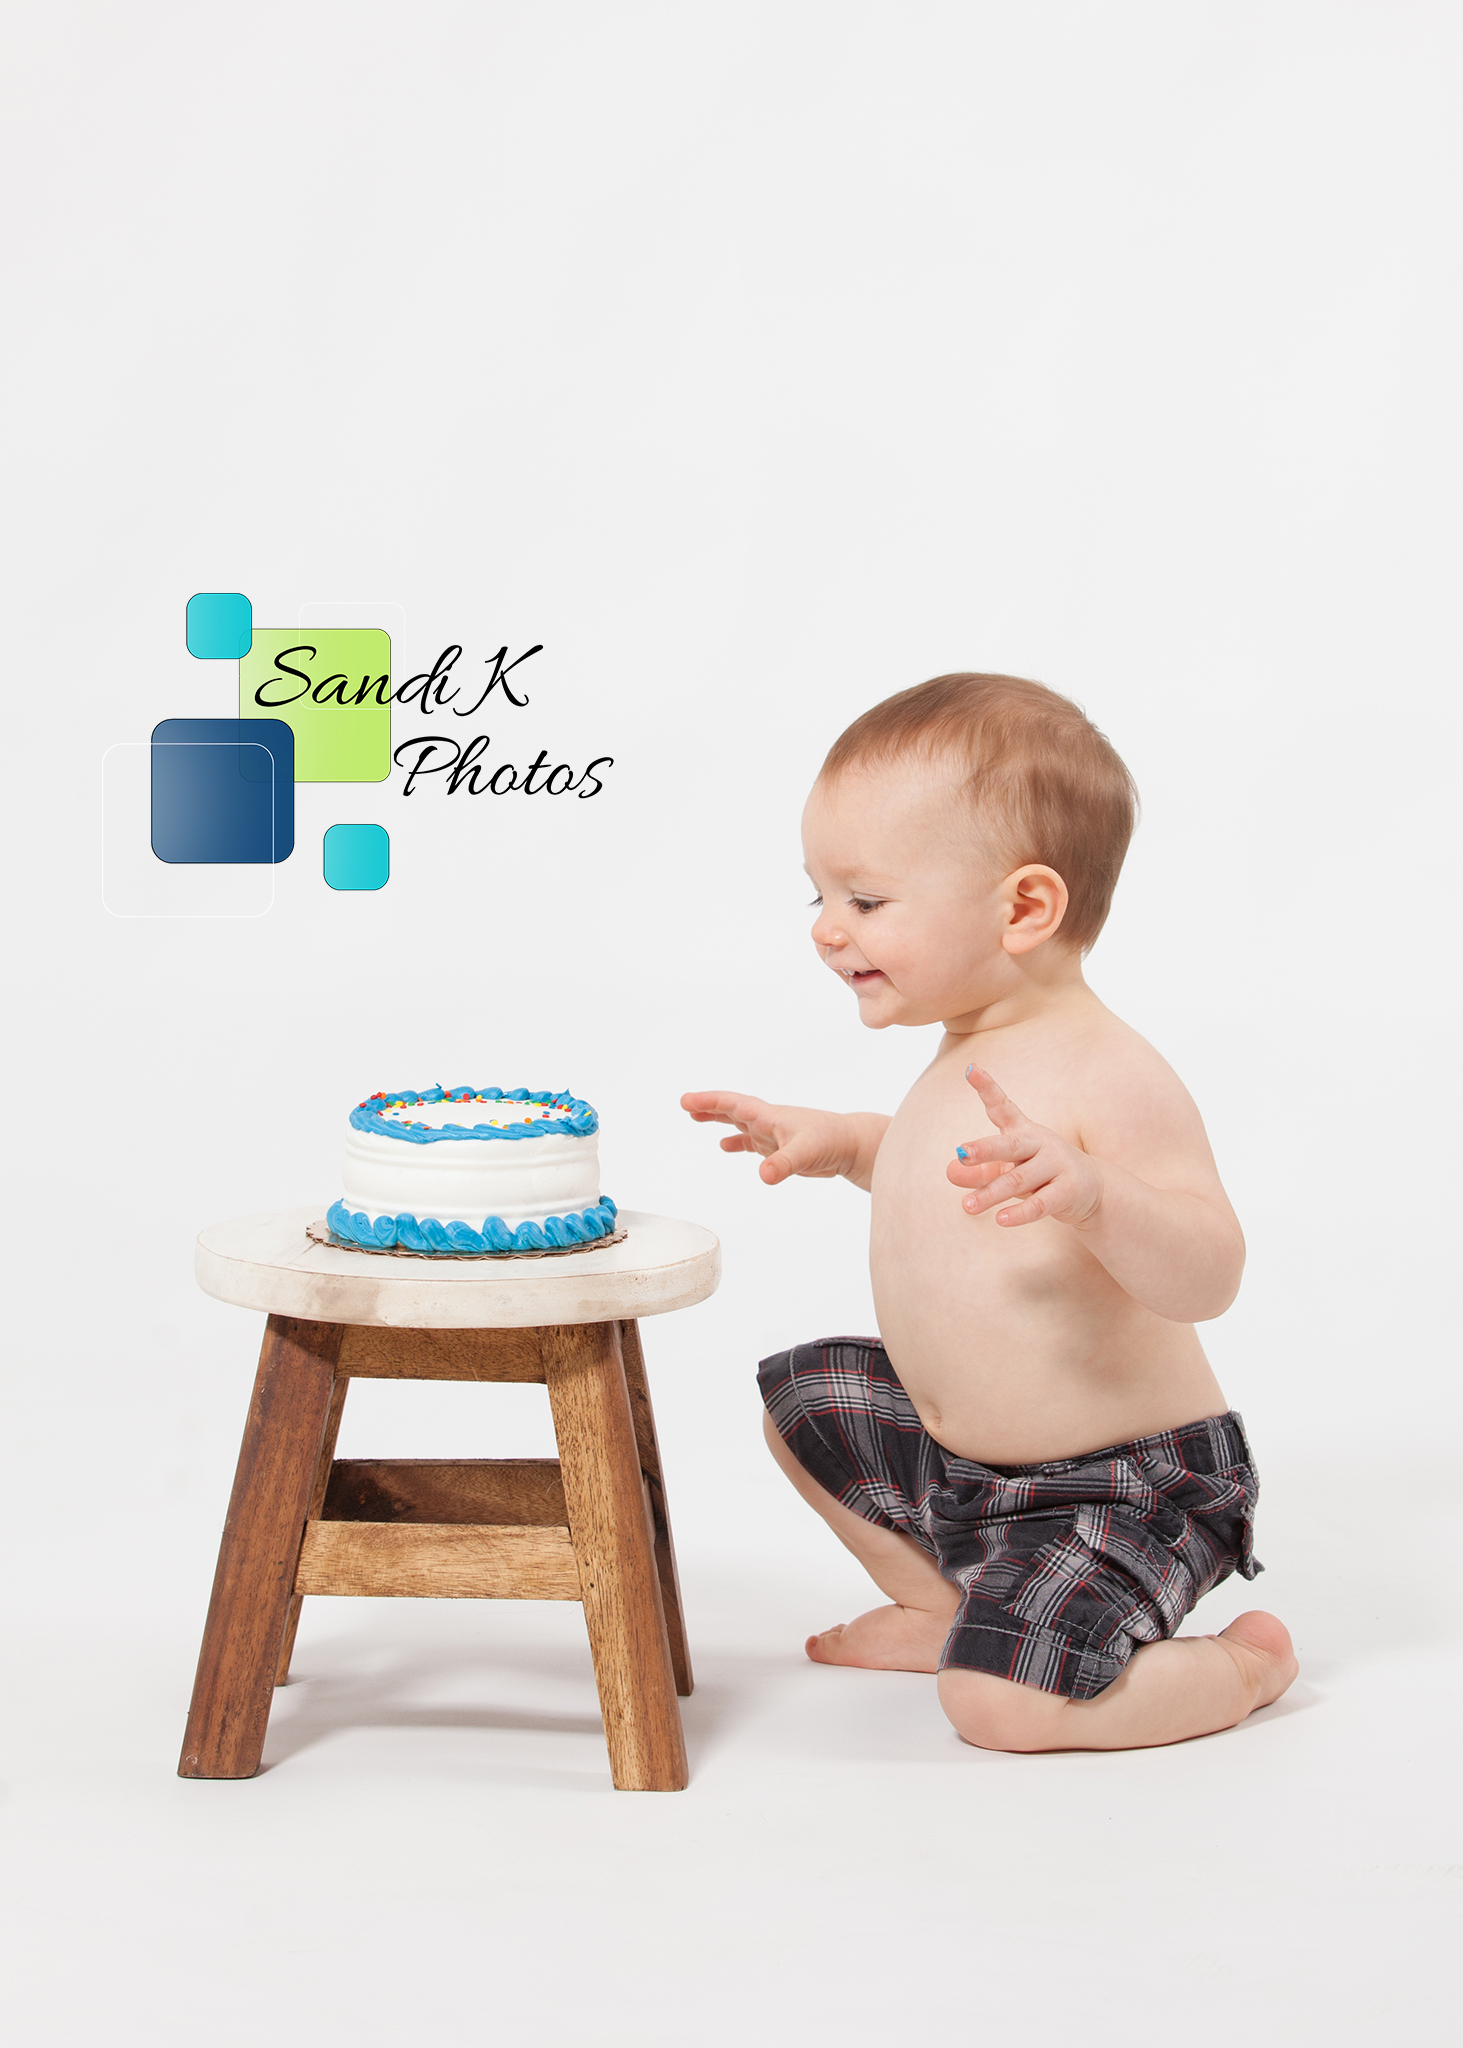 cake smash, sandi k photos, scranton photographer, childrens portraits